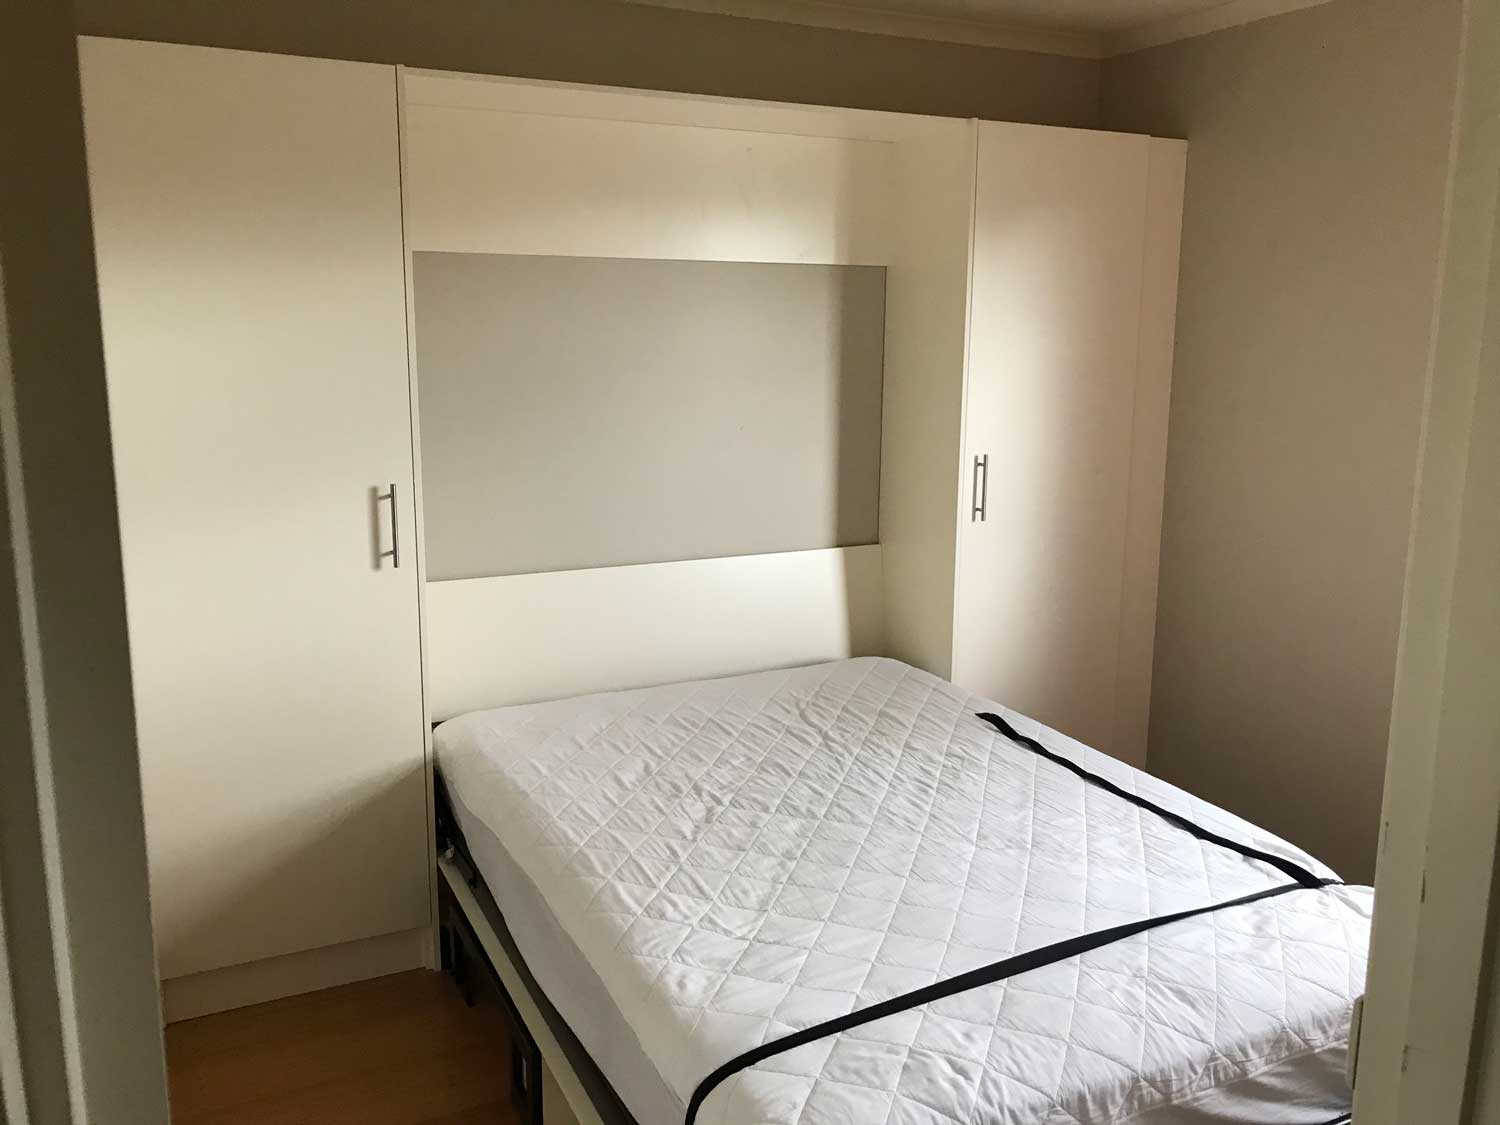 wall-bed install